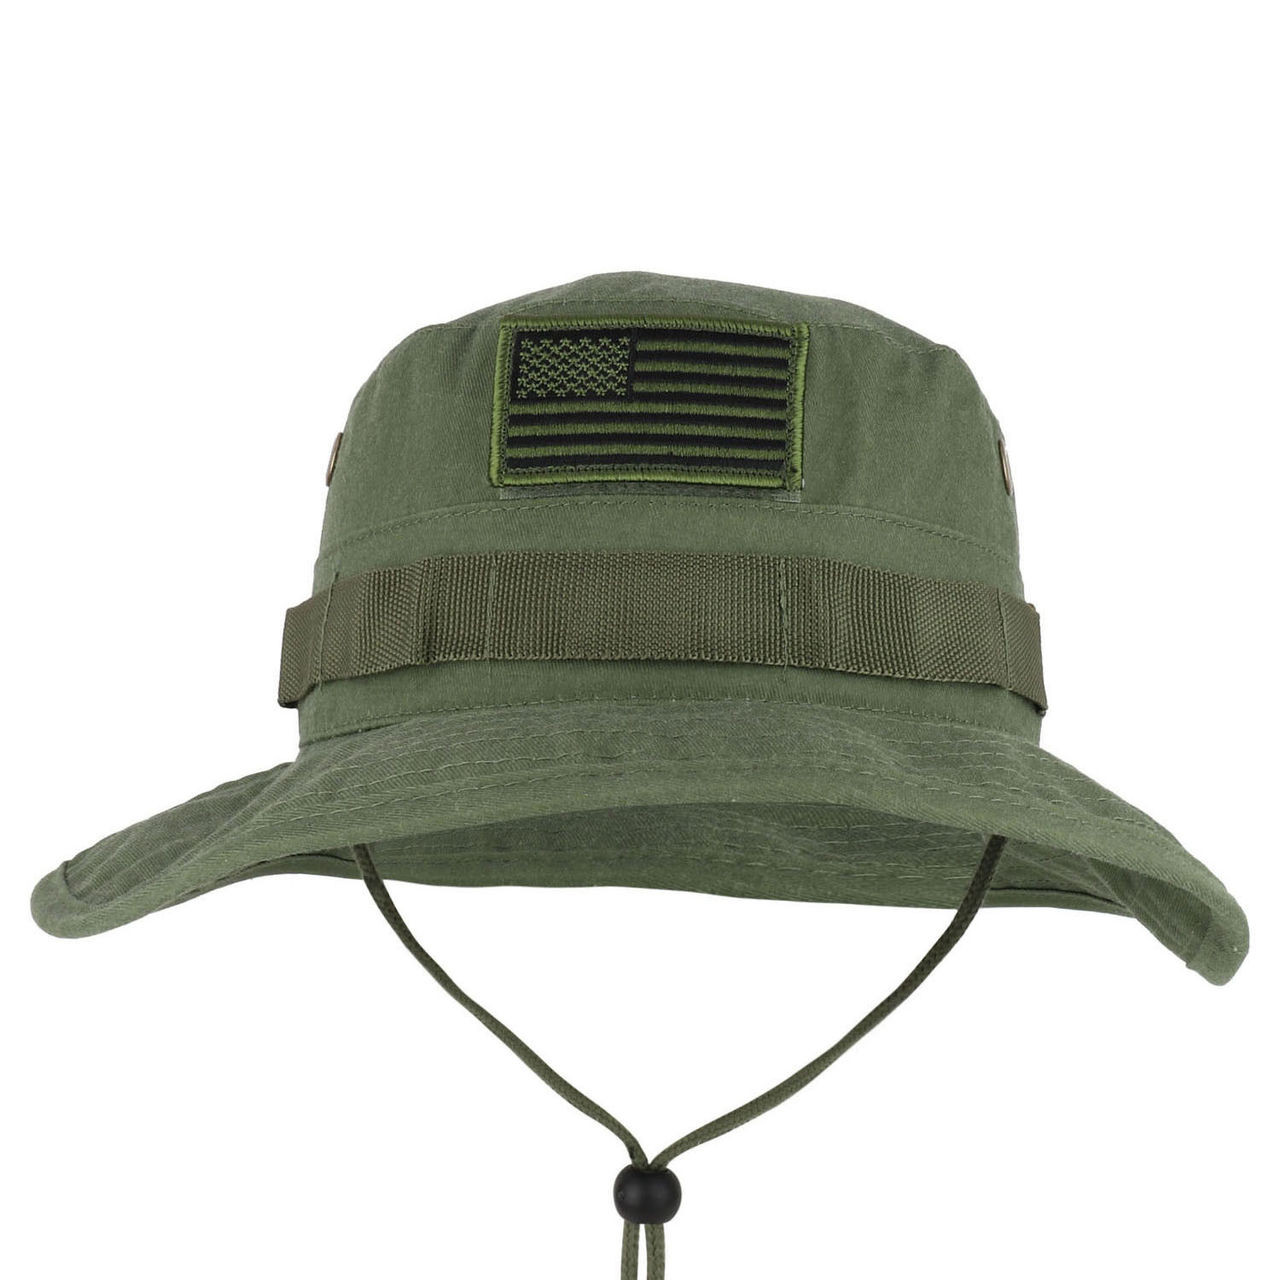 807f99e411f 6770 Eagle Crest Boonie Hat Olive Drab 100% Cotton (OSFM)